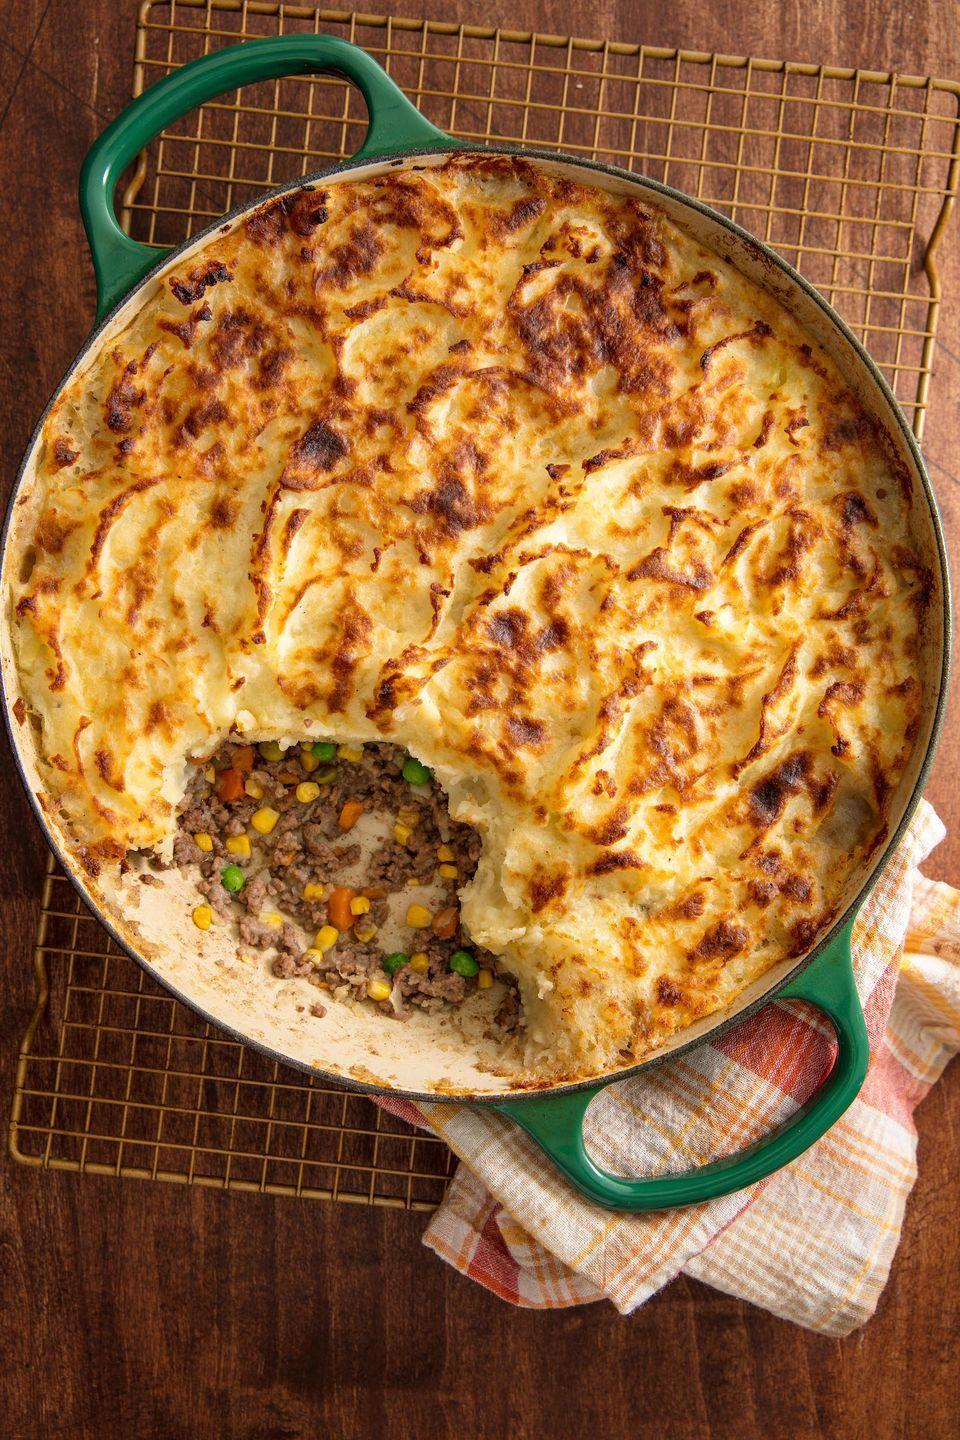 """<p>The ultimate comfort dish.</p><p>Get the recipe from <a href=""""https://www.delish.com/cooking/recipe-ideas/recipes/a57949/easy-shepherds-pie-recipe/"""" rel=""""nofollow noopener"""" target=""""_blank"""" data-ylk=""""slk:Delish"""" class=""""link rapid-noclick-resp"""">Delish</a>. </p>"""